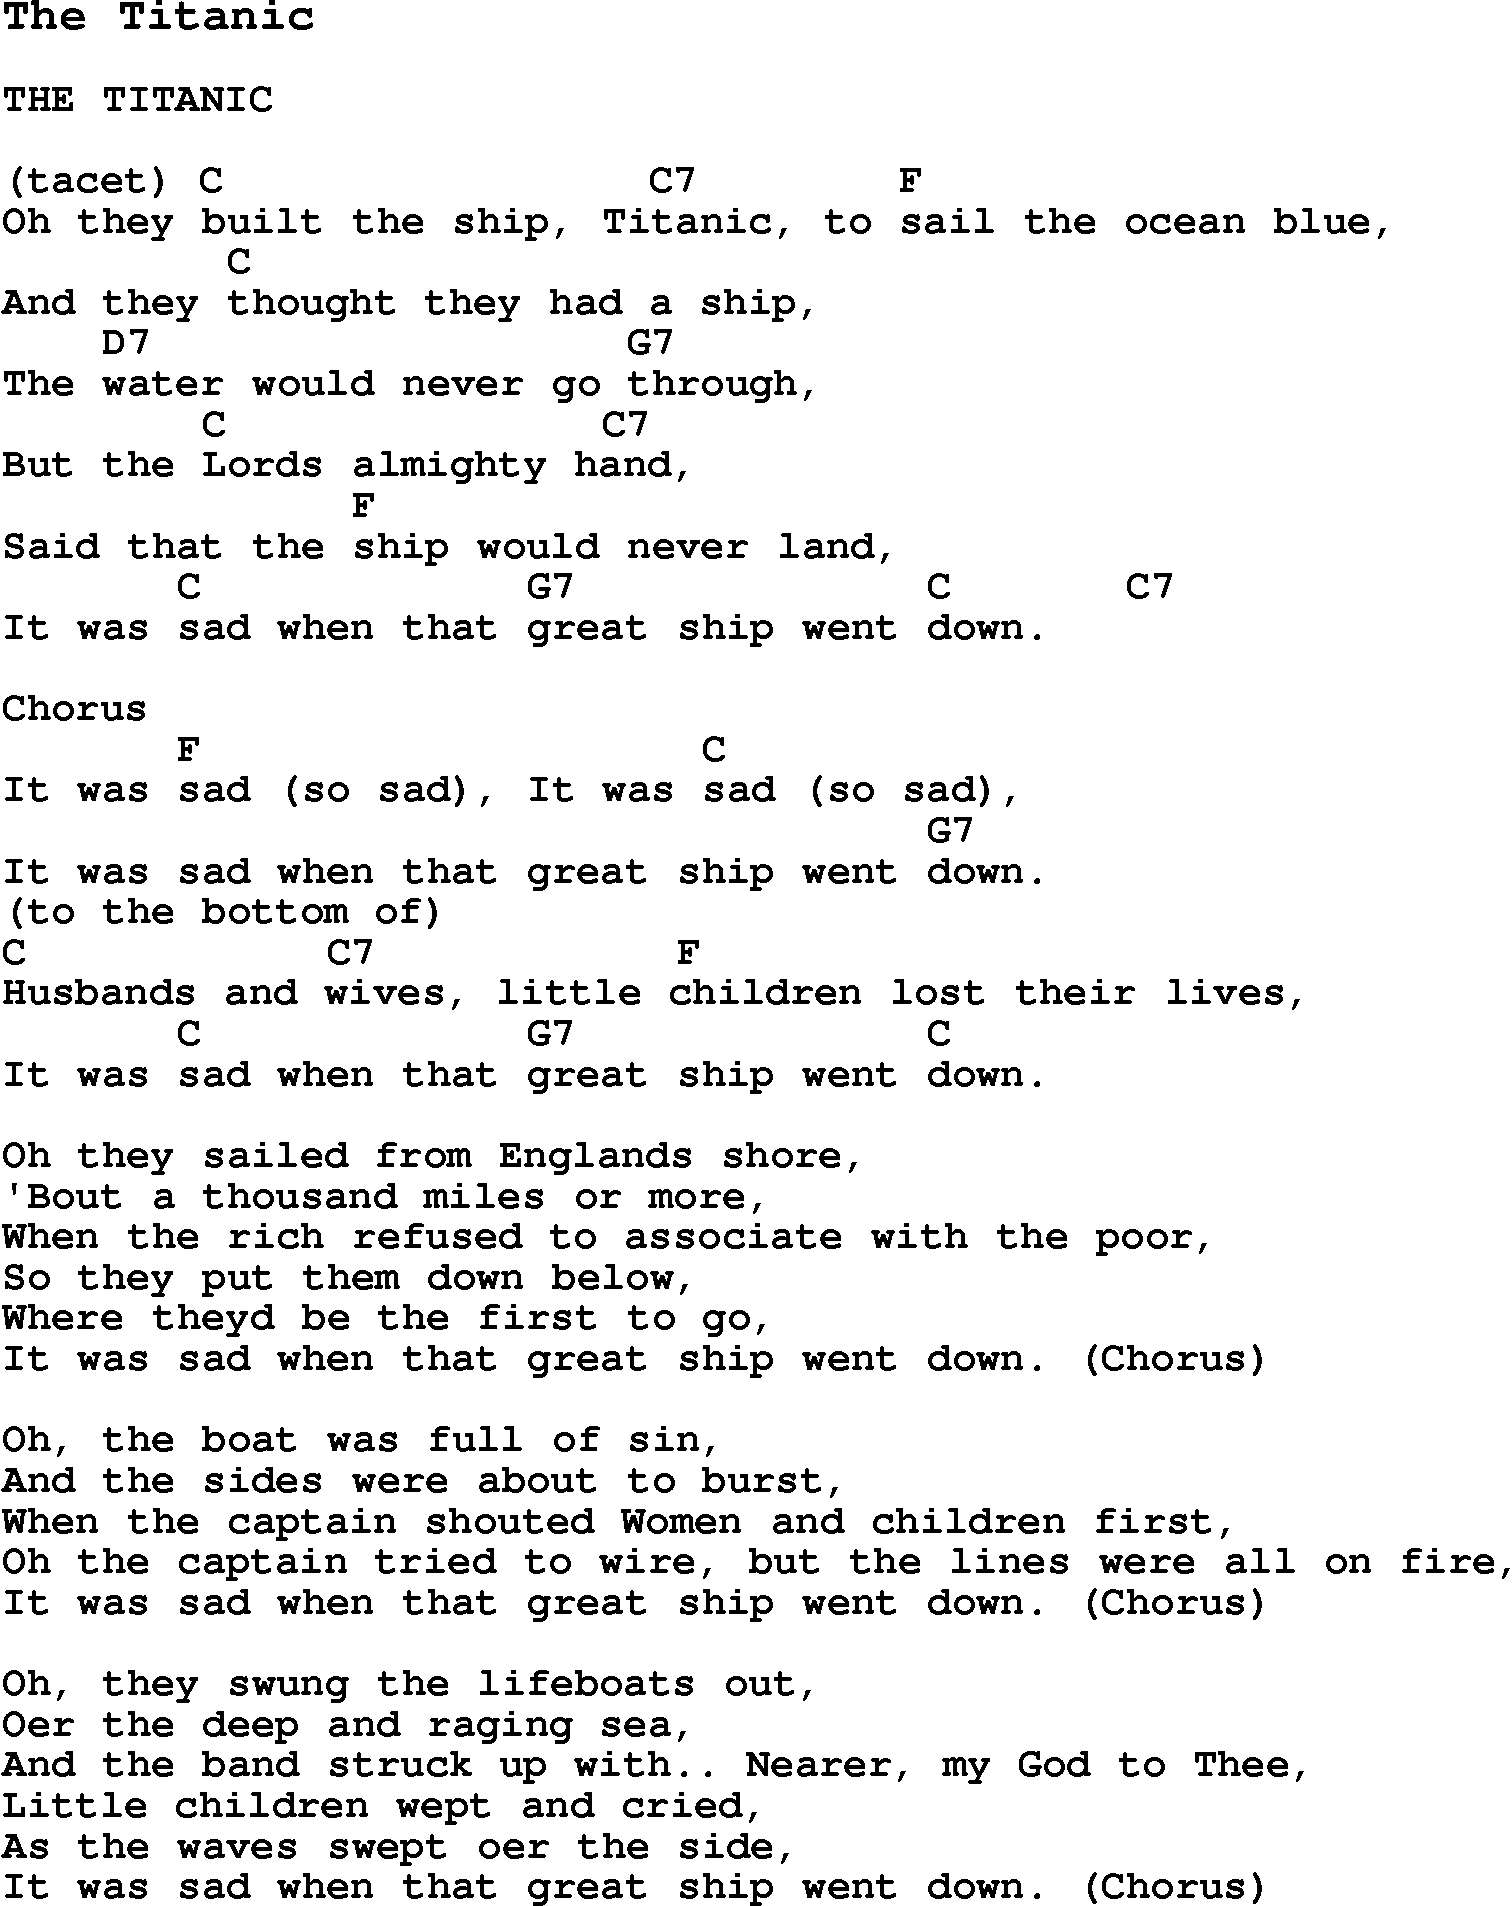 Summer Camp Song, The Titanic, with lyrics and chords for